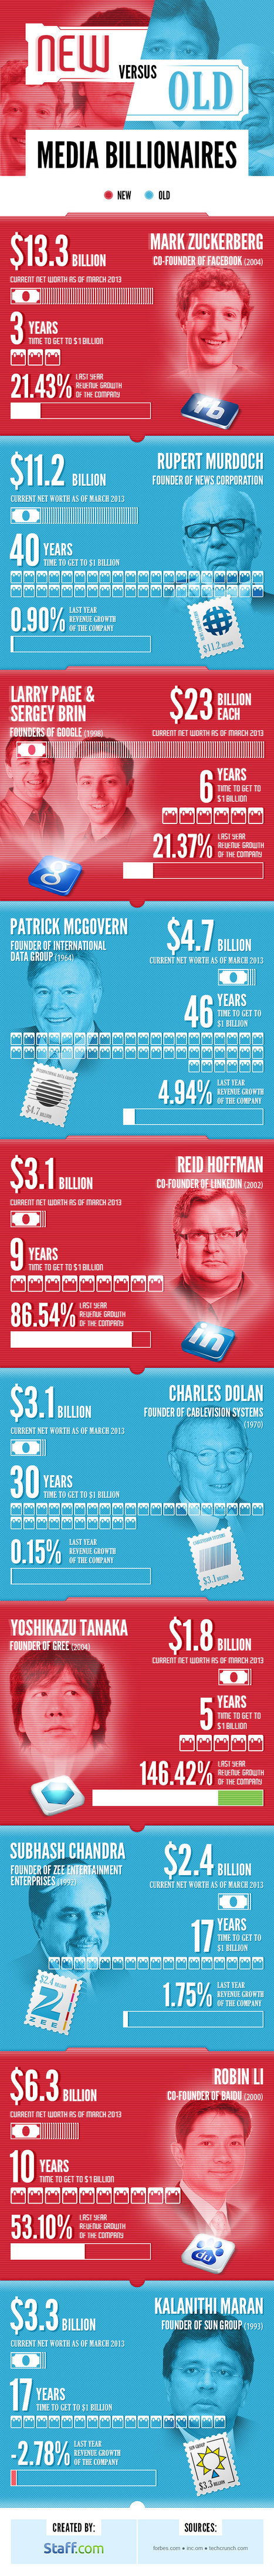 INFOGRAPHIC: Who Will Be The Next Cloud Based Billionaire? | Irie Web - Social, SEO, Content | Scoop.it